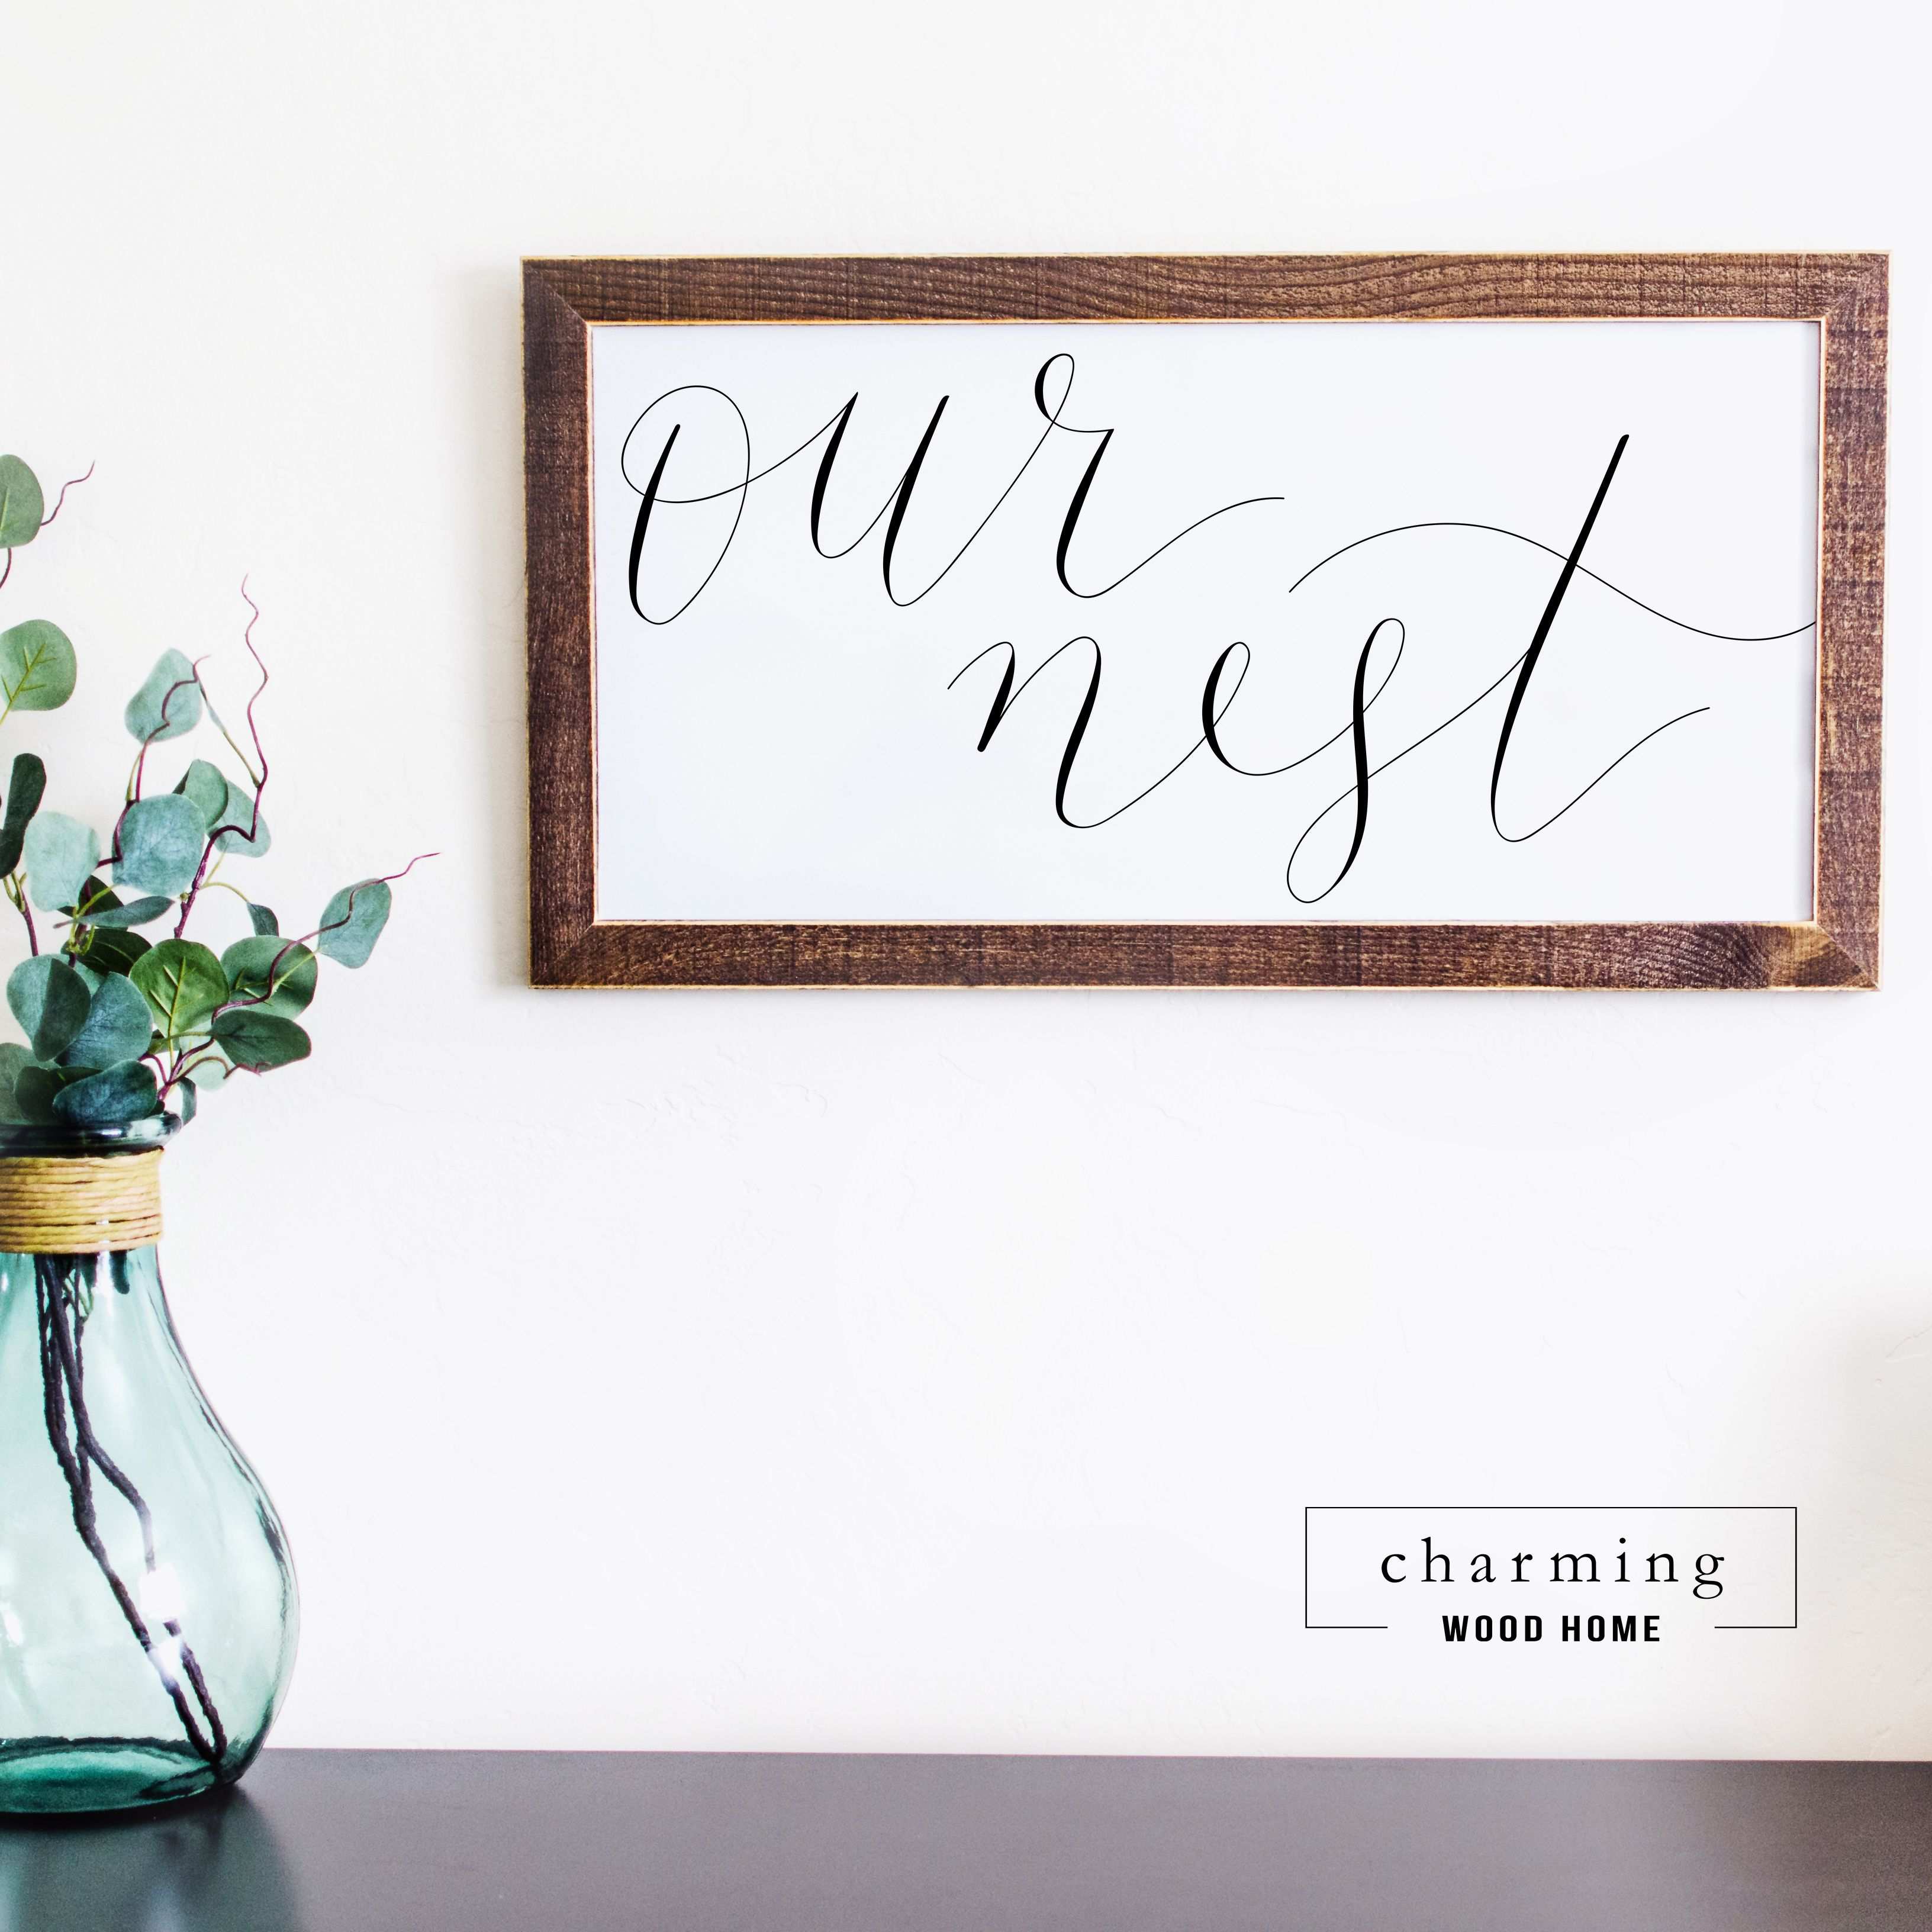 This cute calligraphy farmhouse sign would look perfect in